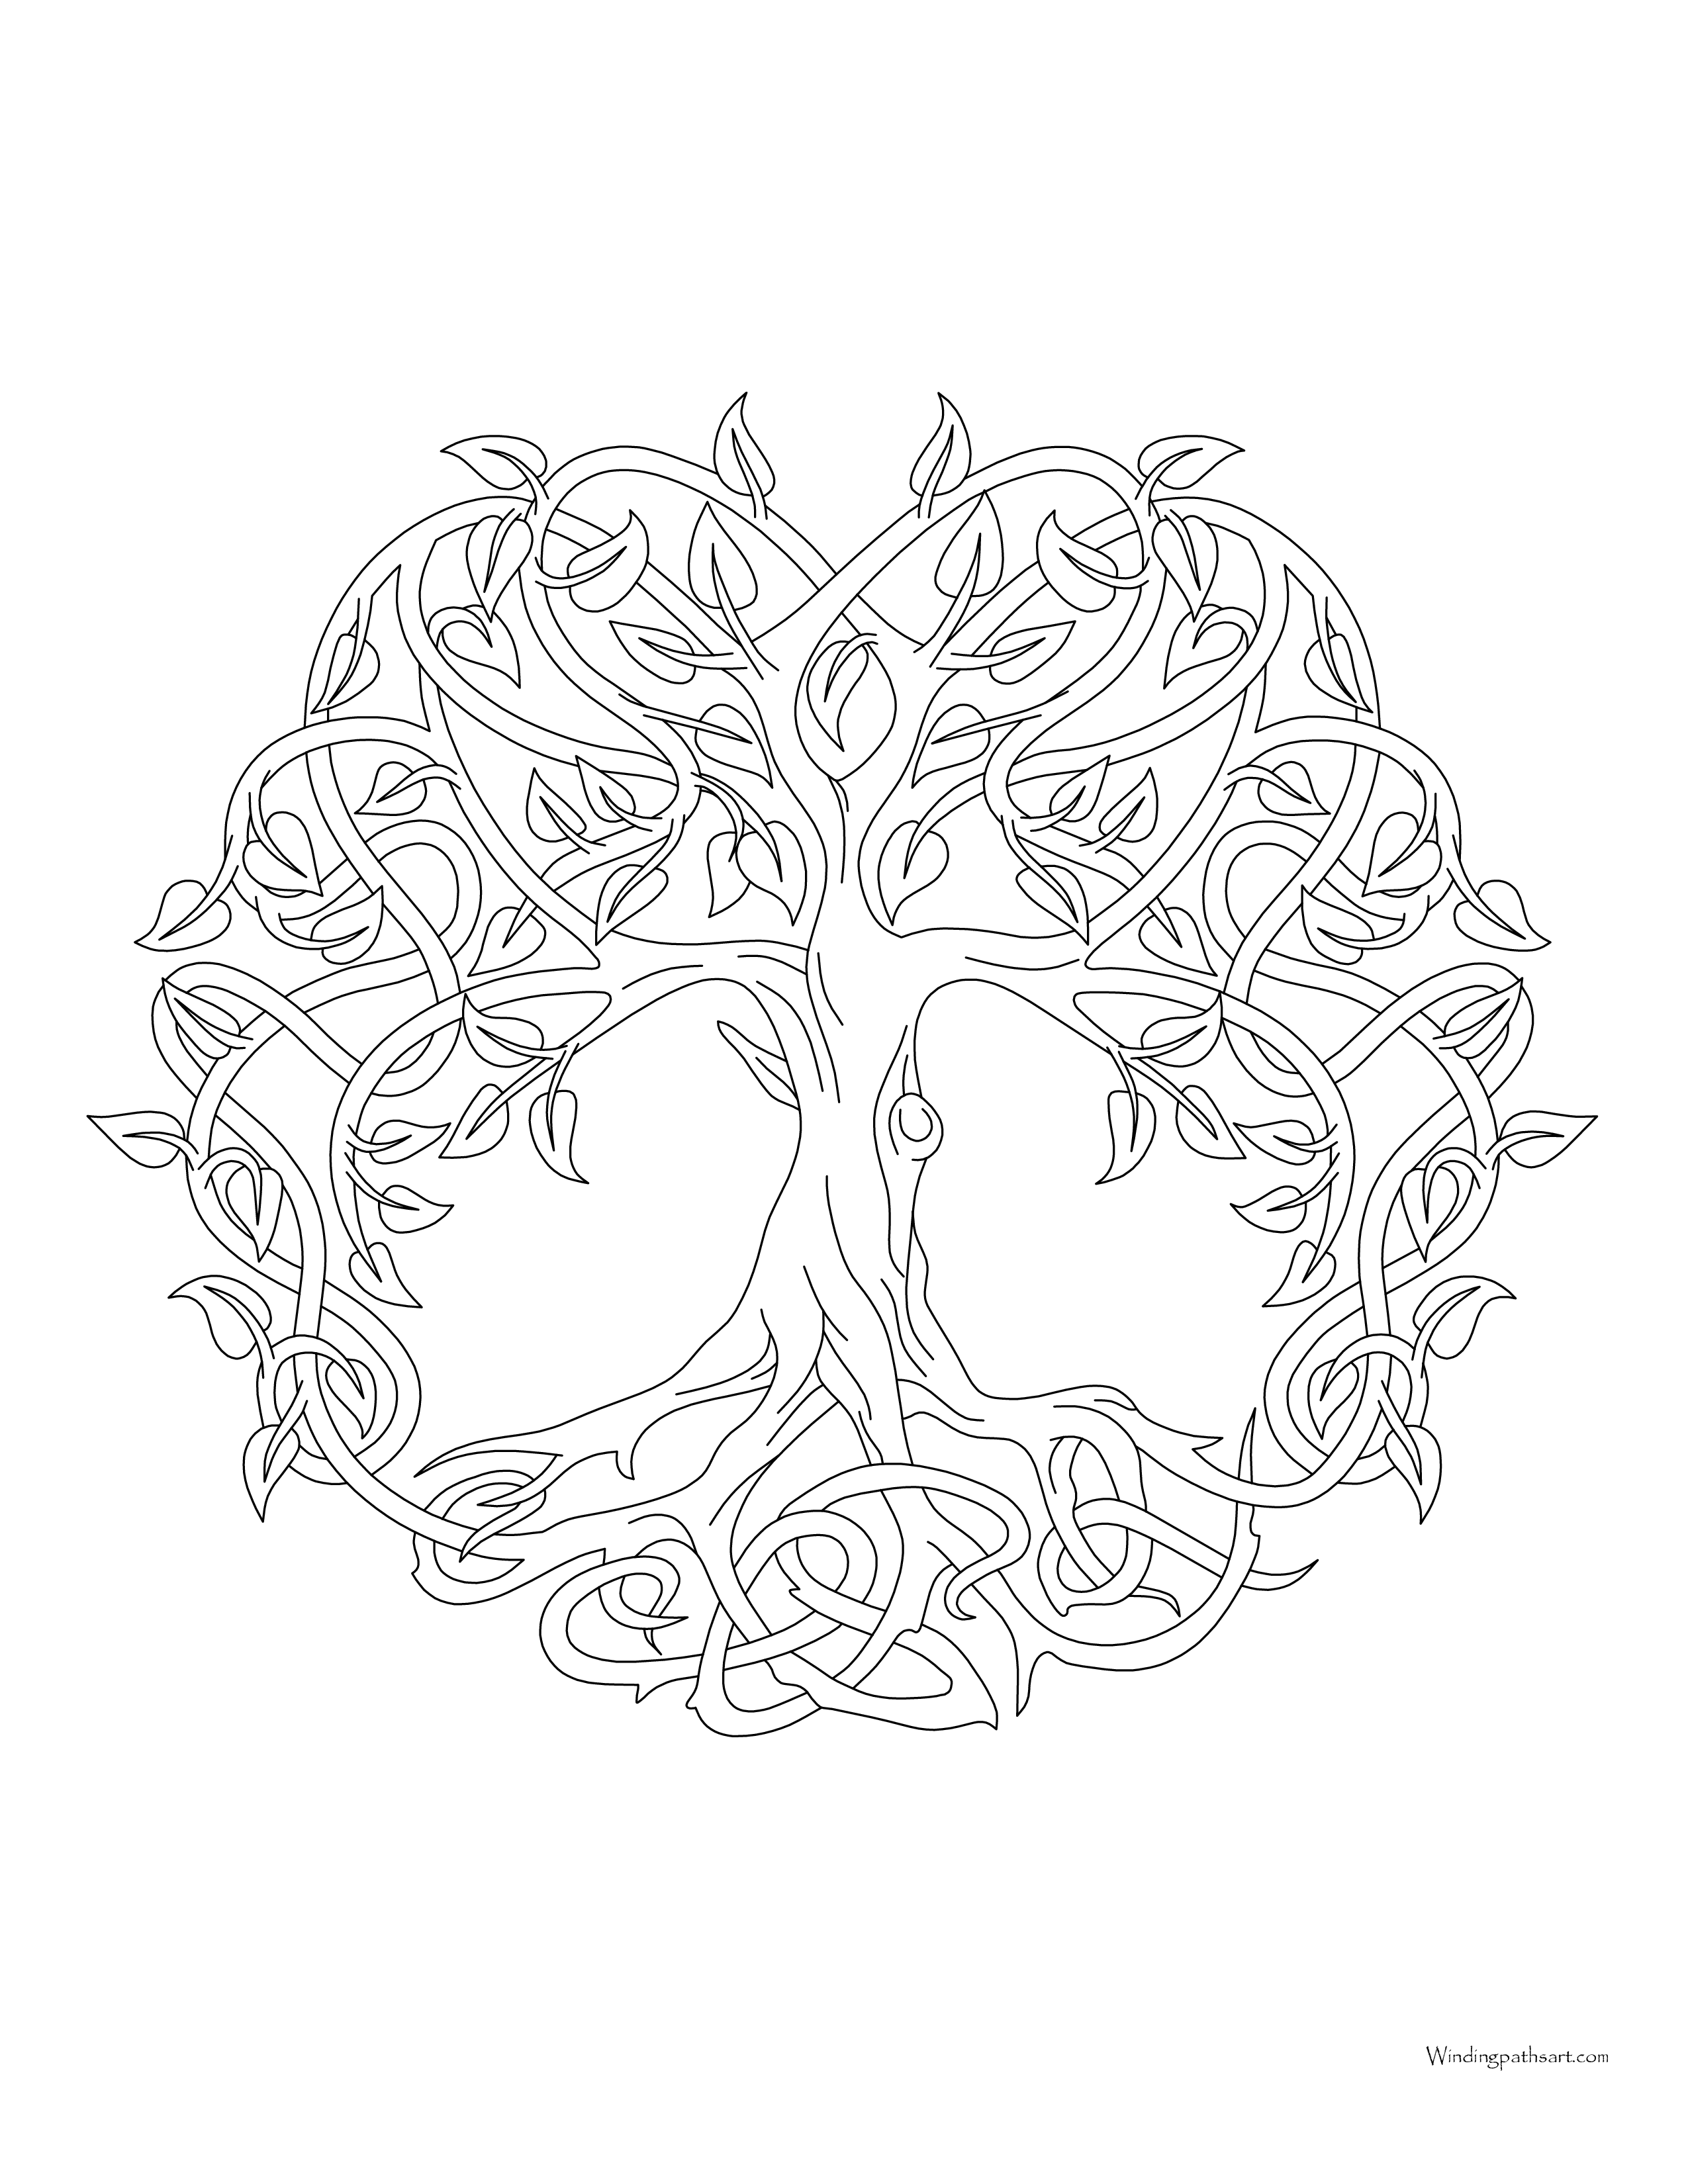 Tree Of Life Coloring Pages : coloring, pages, Coloring, Pages